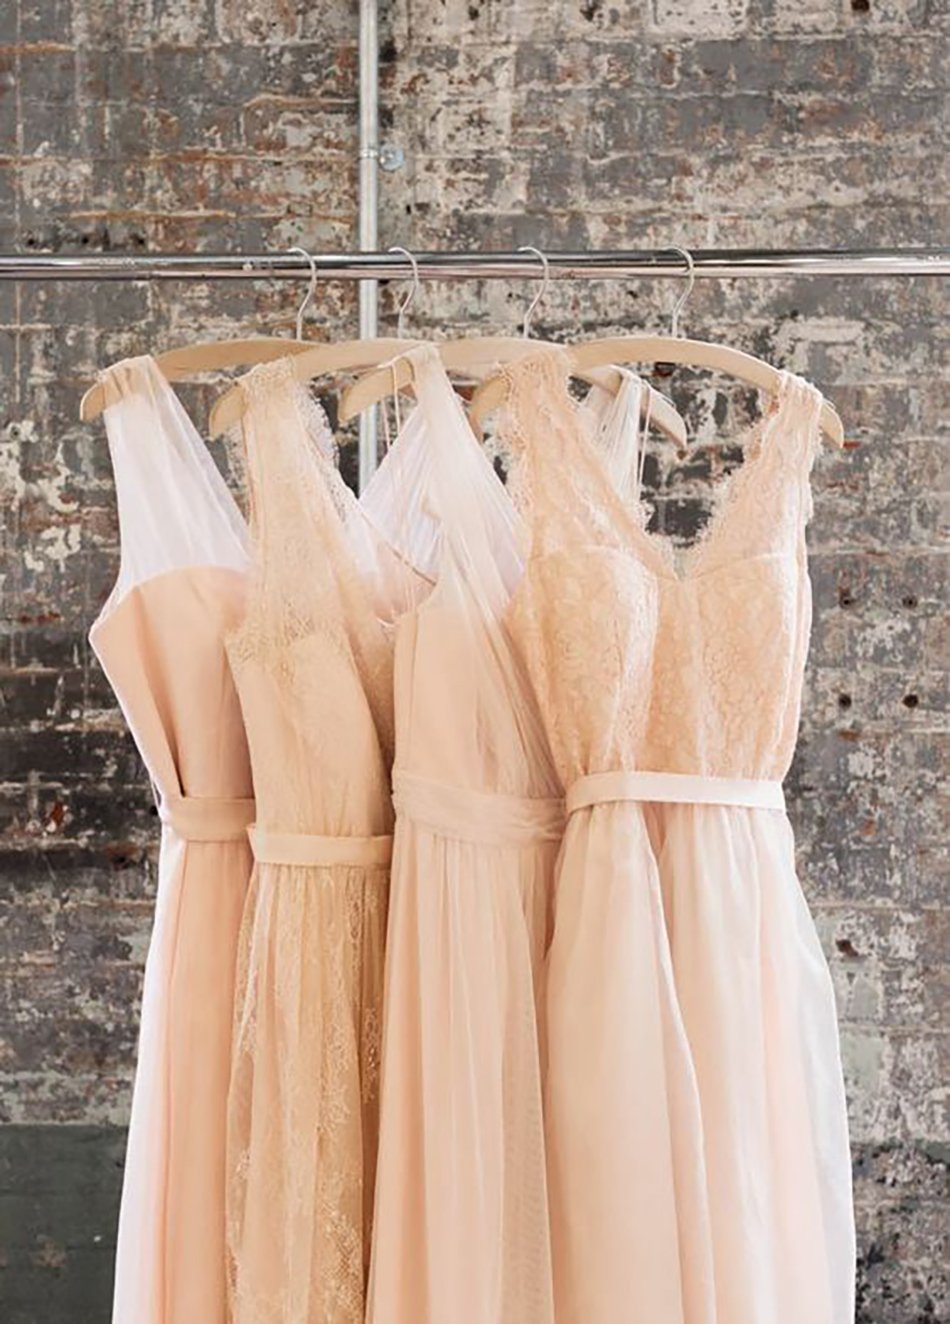 Wedding ideas by colour: Peach bridesmaids dresses - Different styles | CHWV